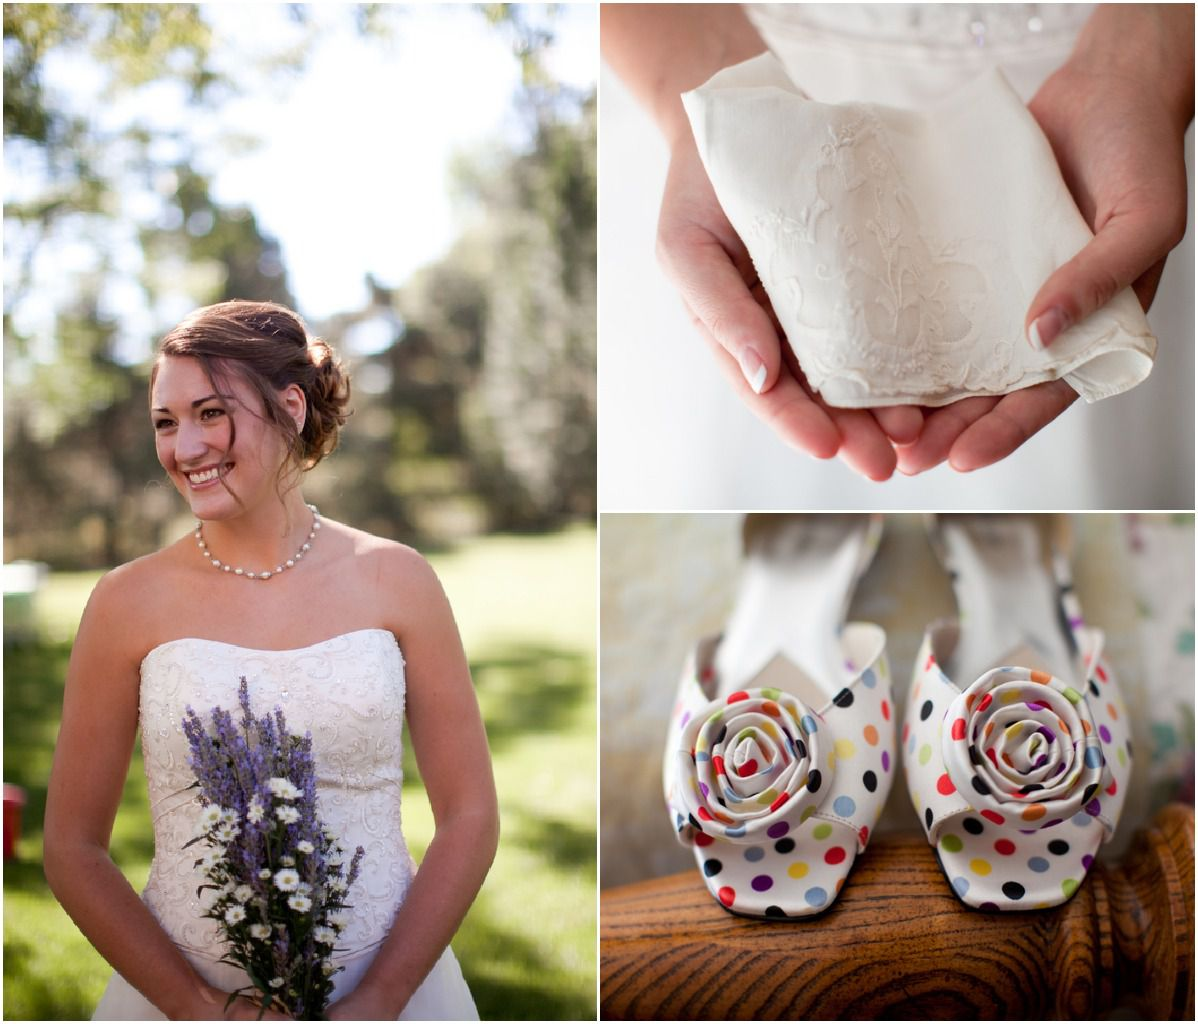 Rustic Chic Wedding Shoes: Colorado Backyard Wedding